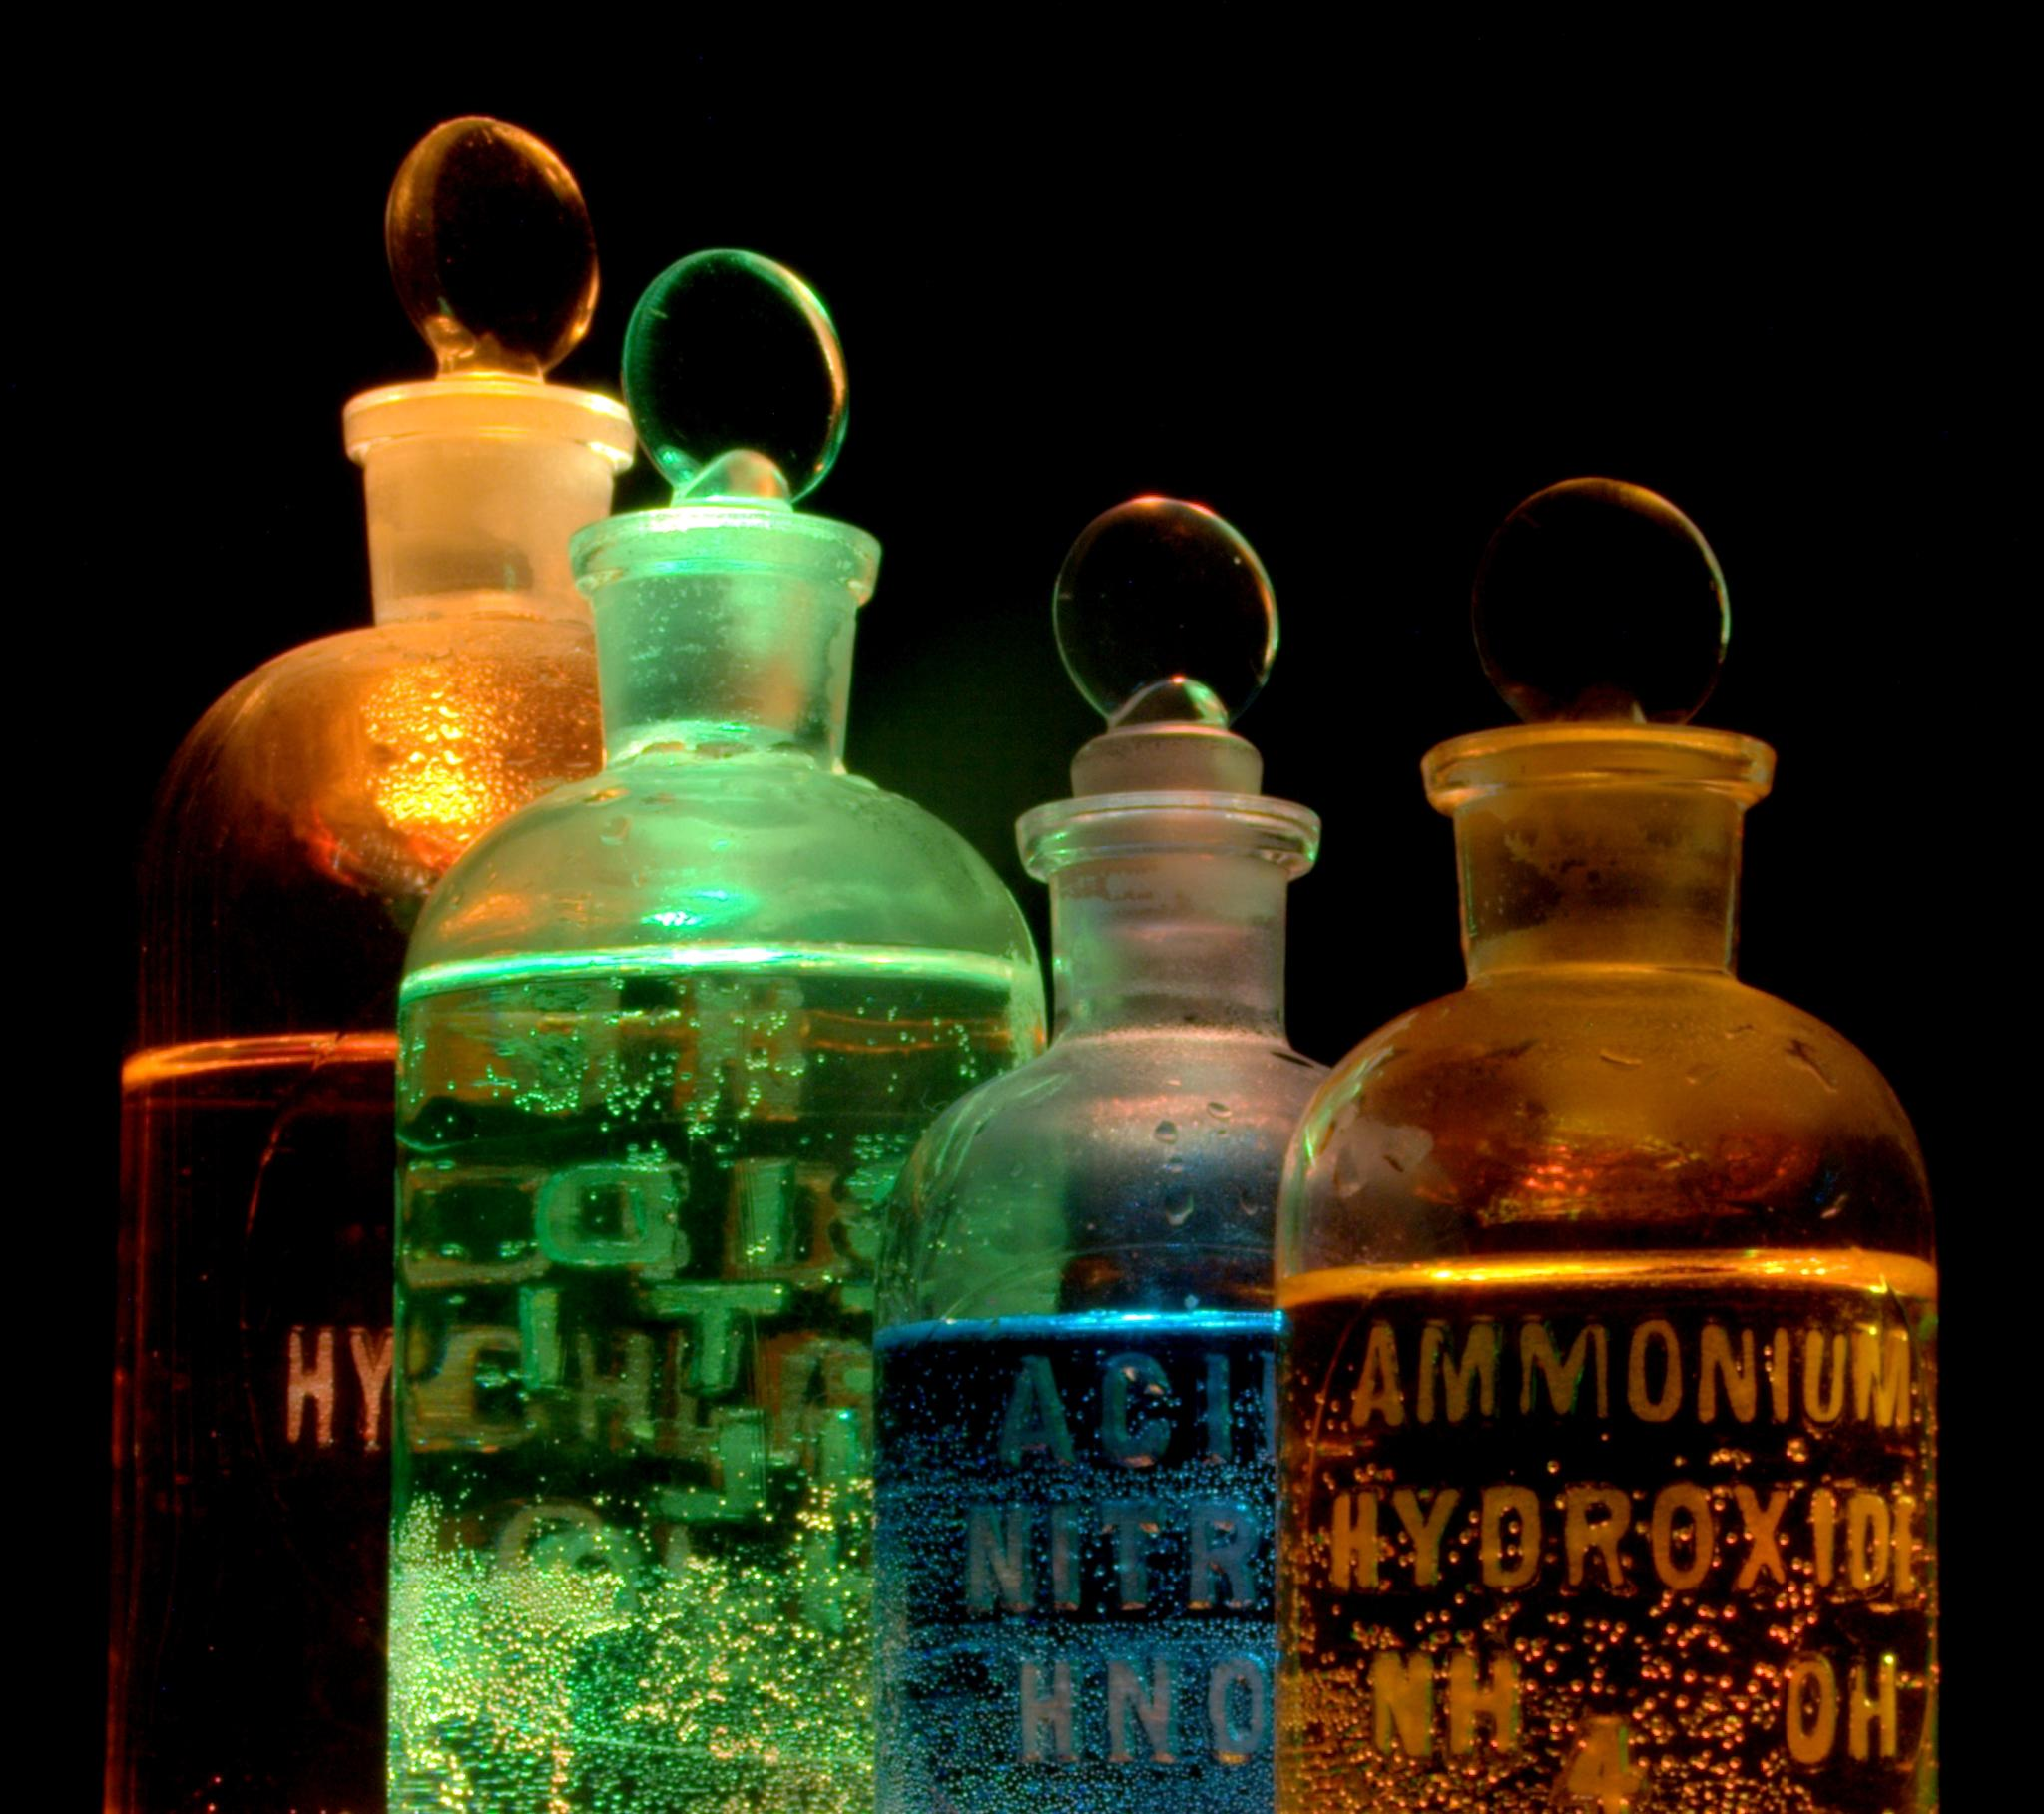 Solutions of substances in flasks - Joe Sullivan (Flickr) - Wikimedia Commons